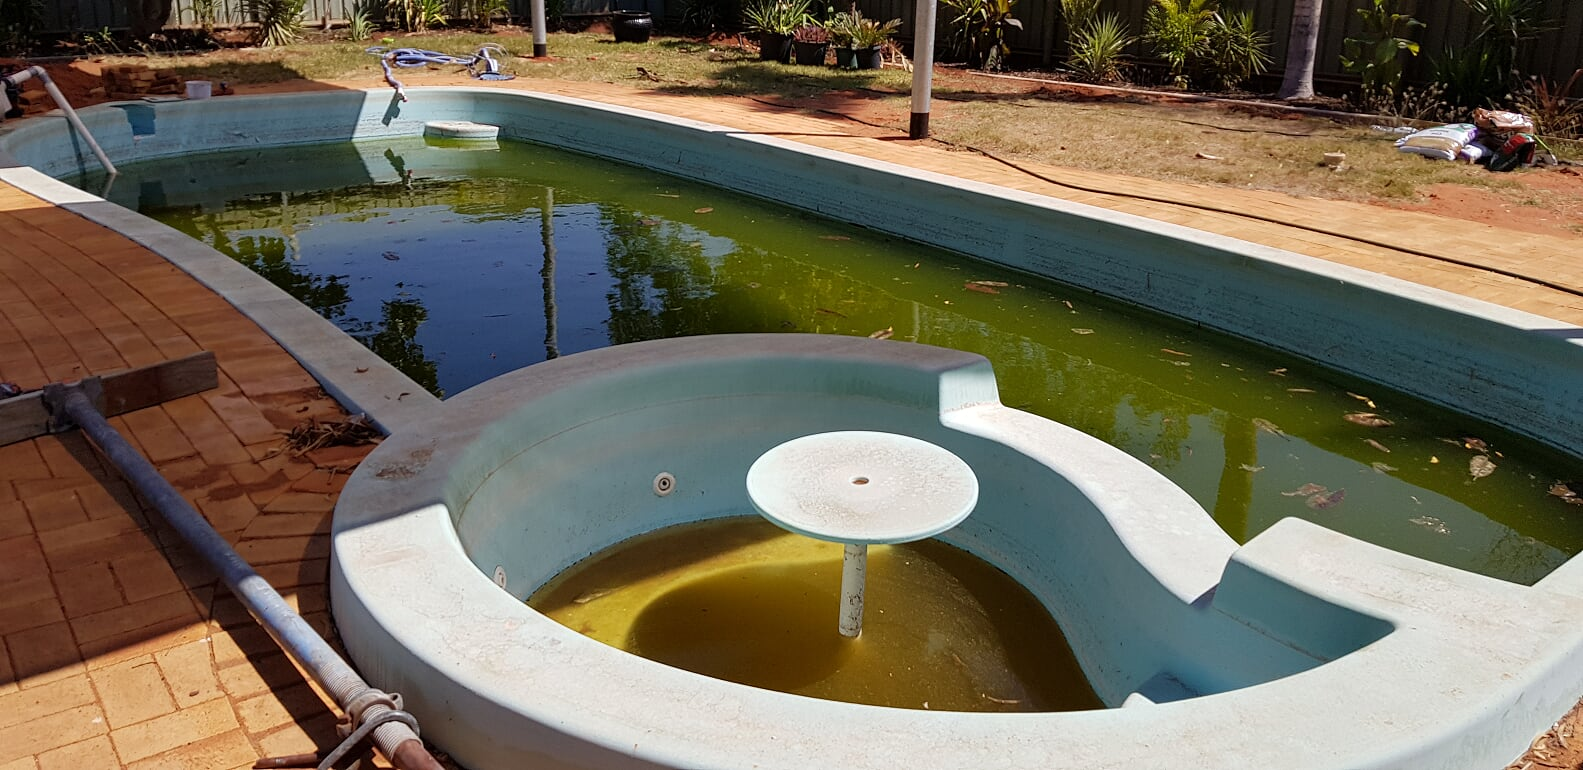 Large fibreglass pool renovation in South Hedland (before) – September 2018.